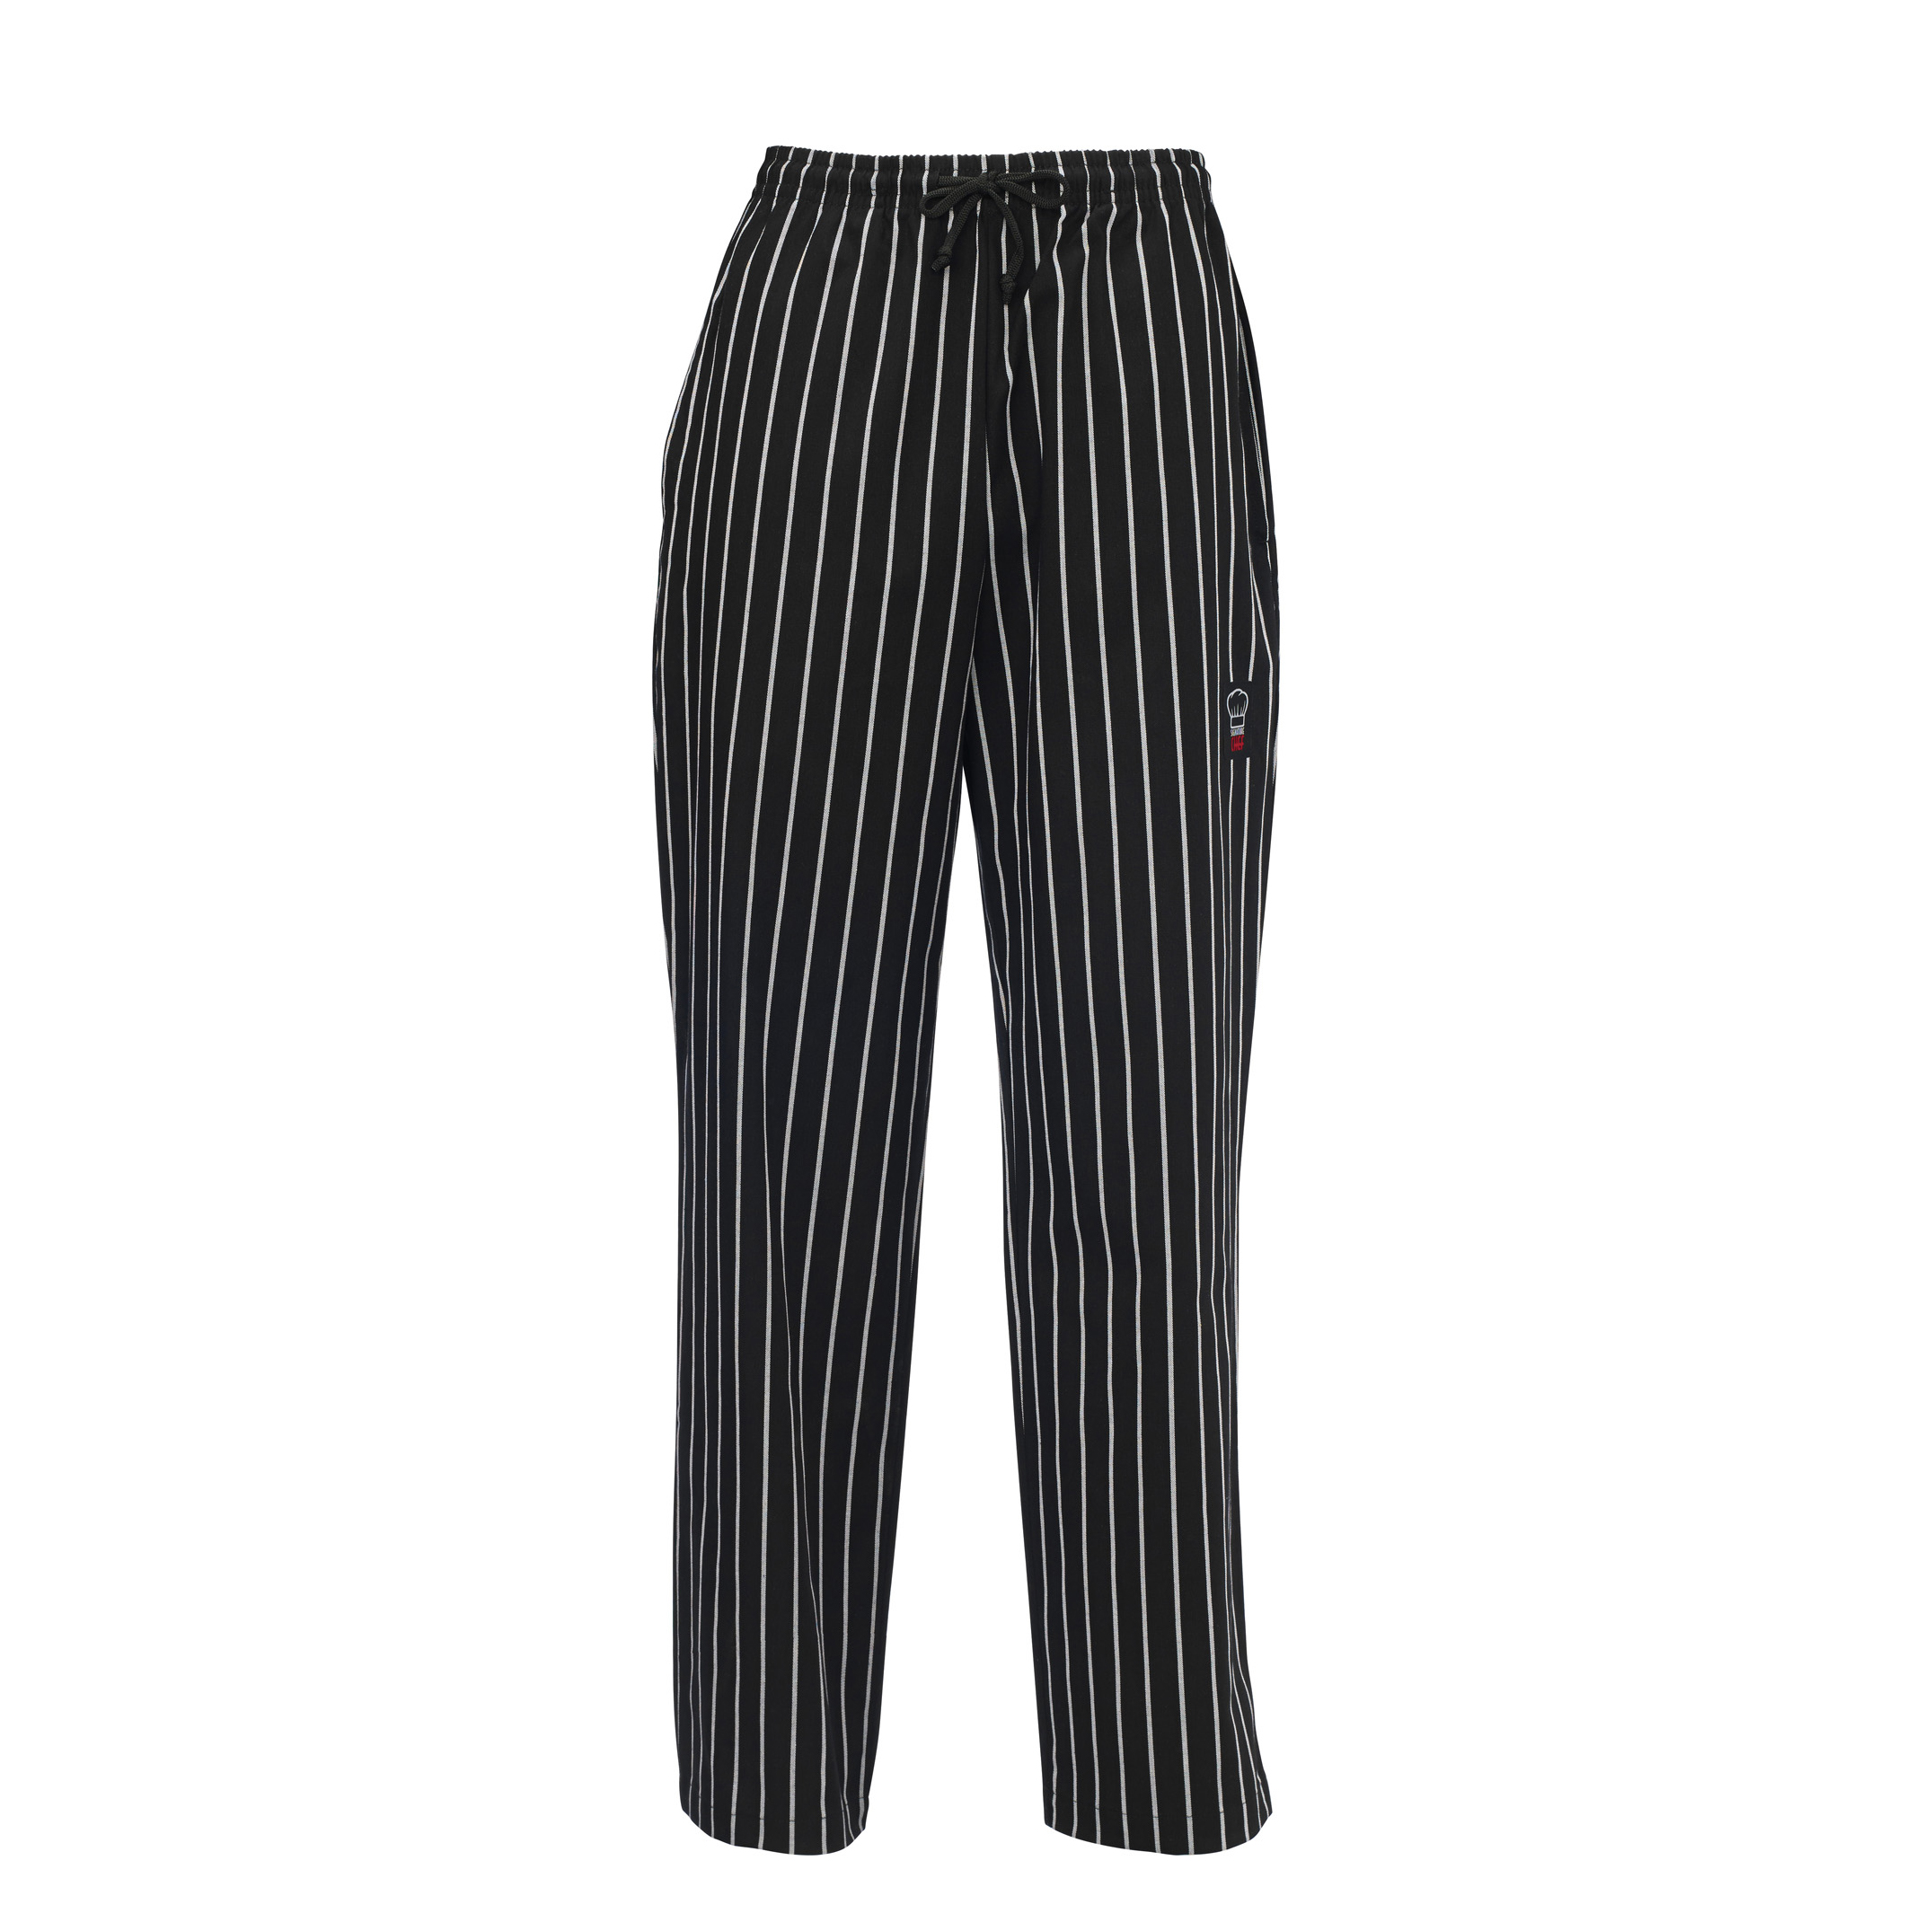 Winco UNF-3CXL chef's pants